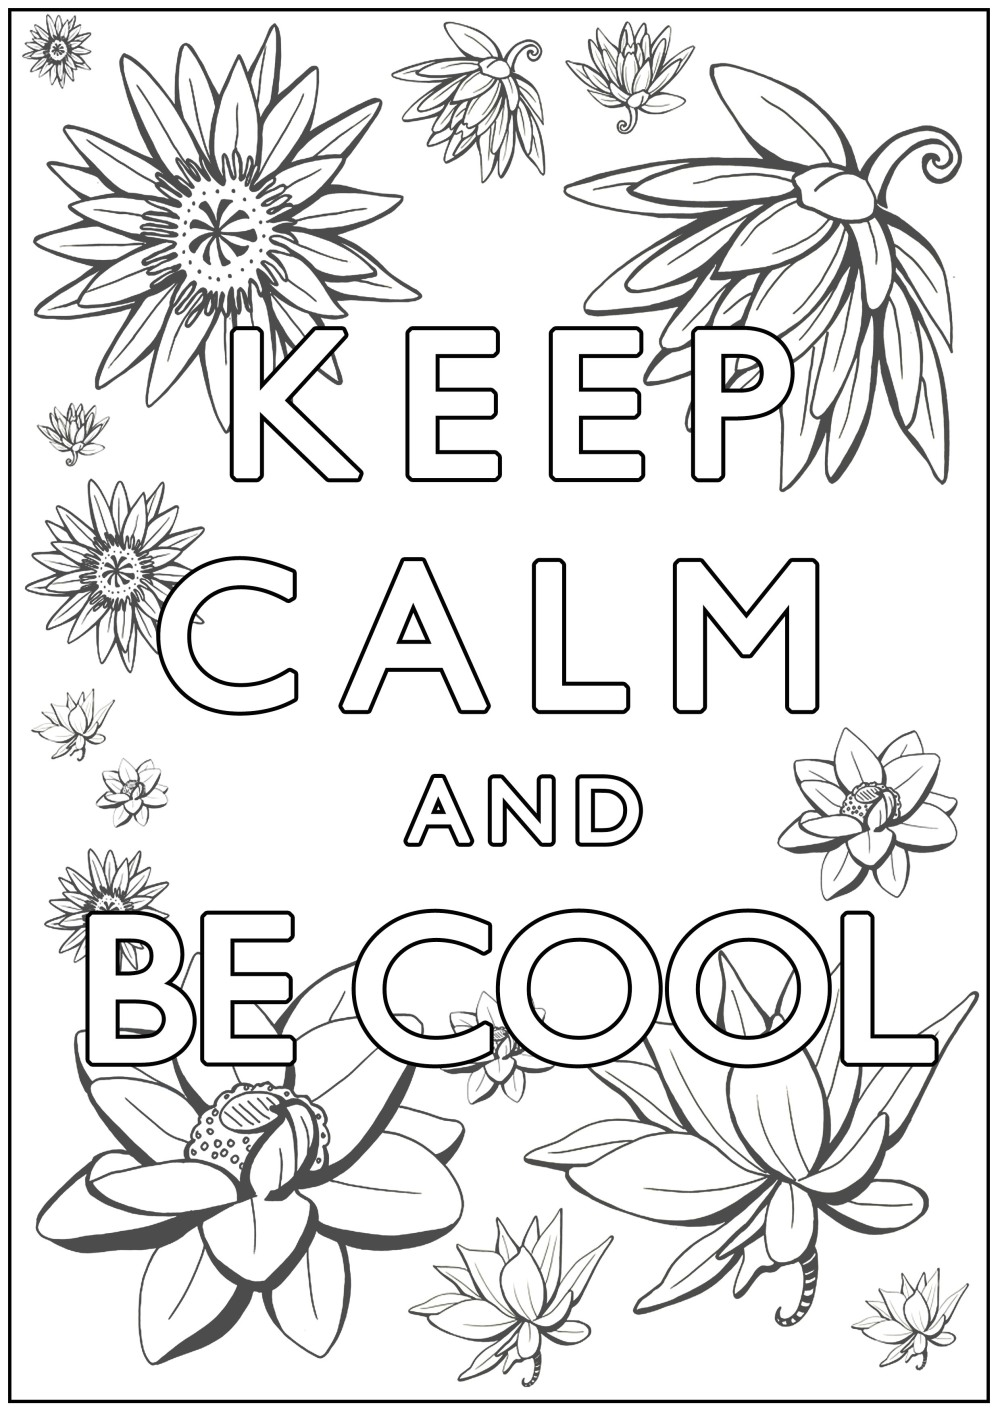 coloring-Keep-Calm-and-be-cool